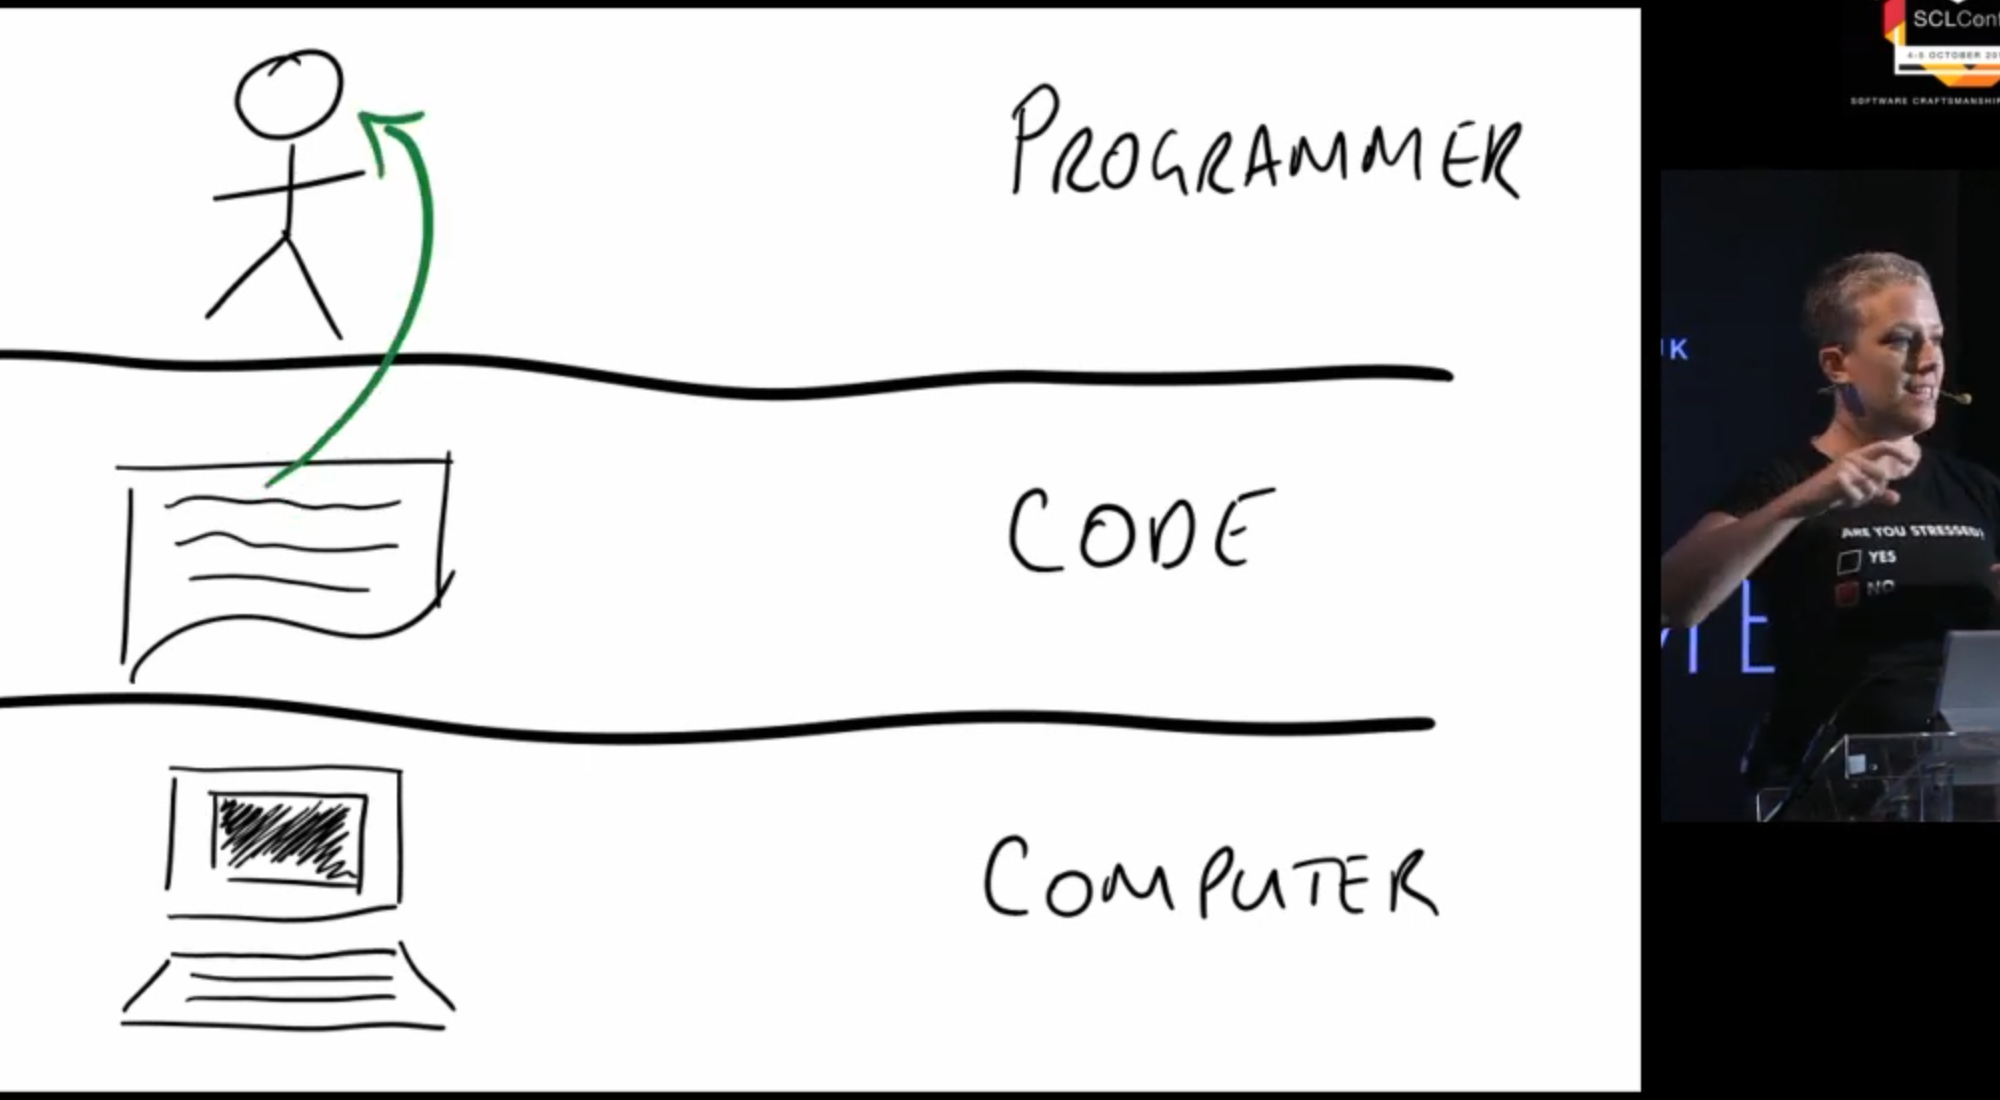 Slide from presentation showing a stick person reading code